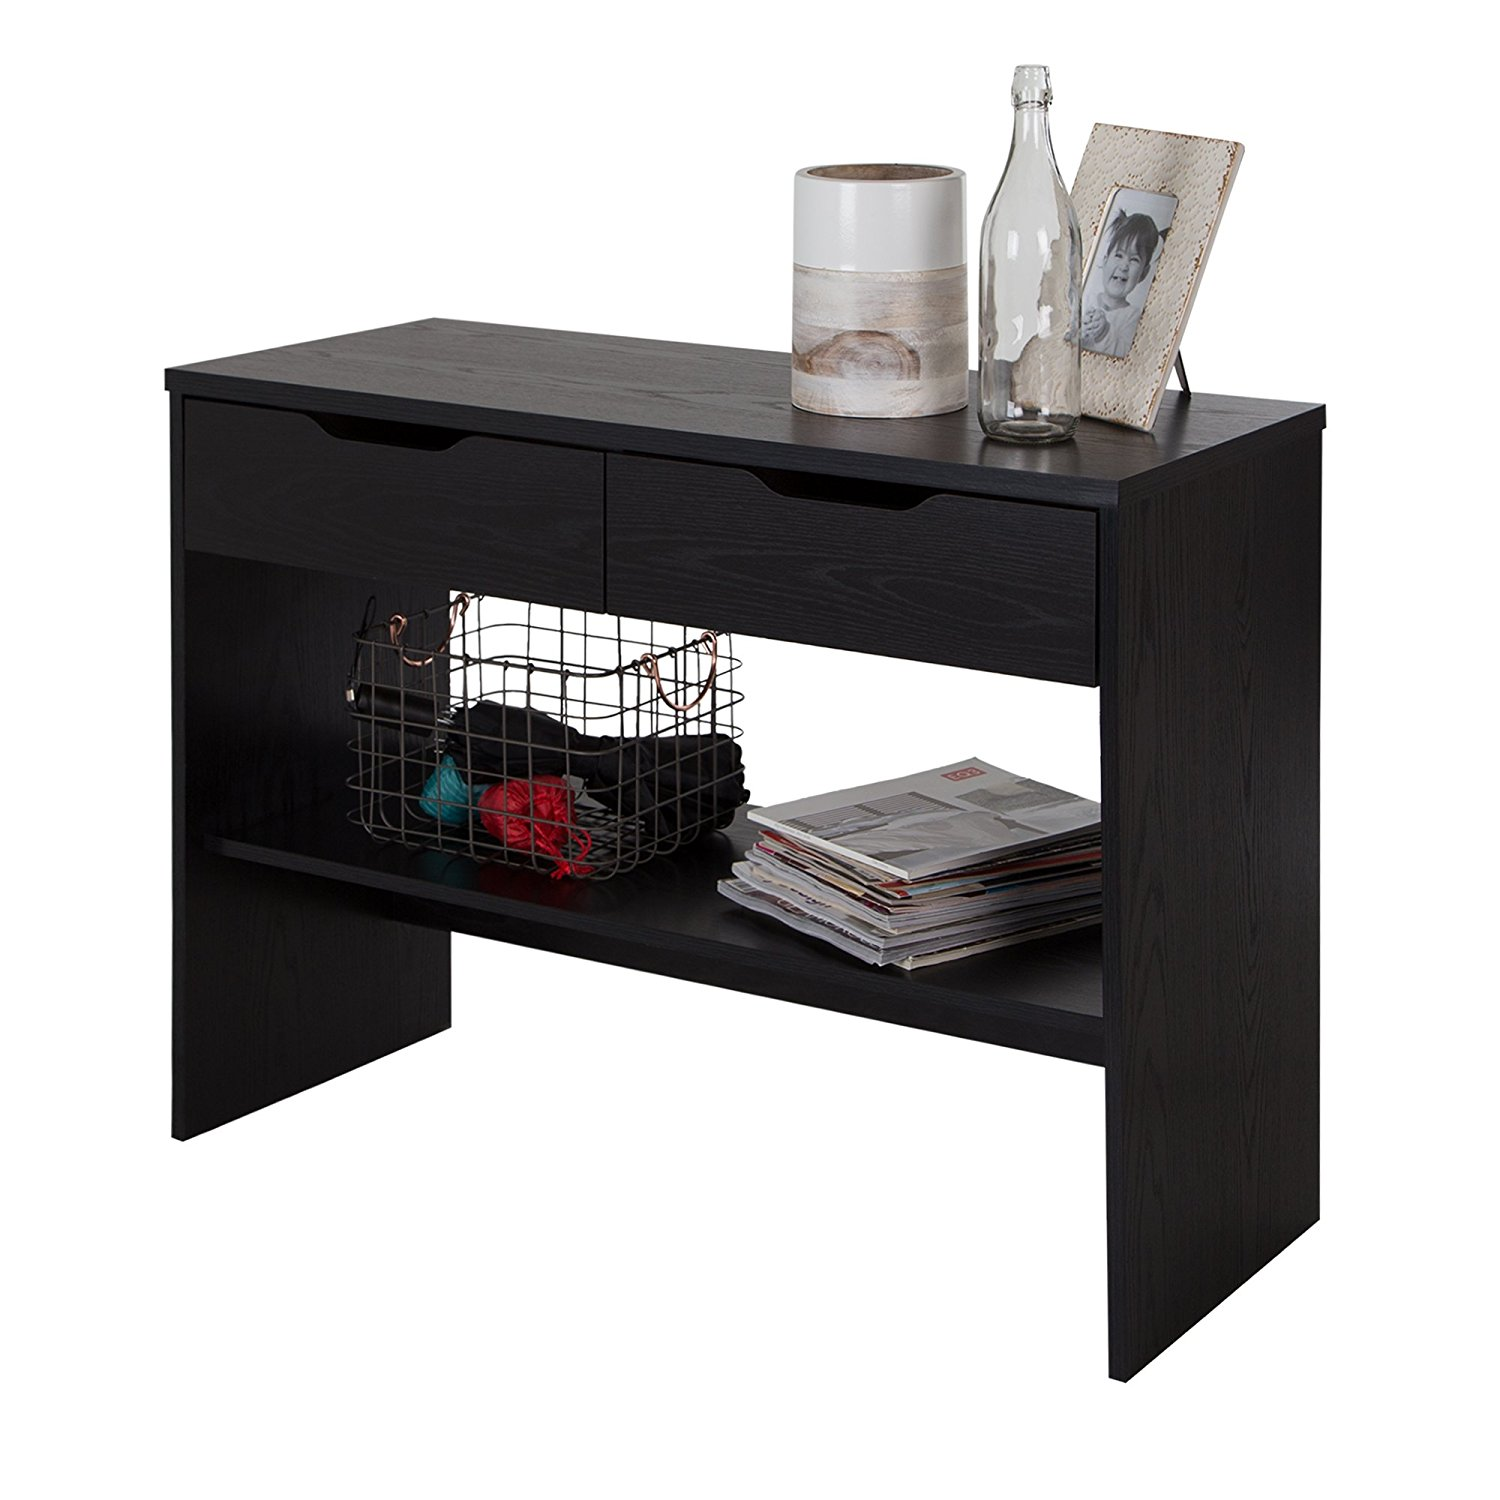 2 Drawer Console Table The Perfect Filler For Dead Space